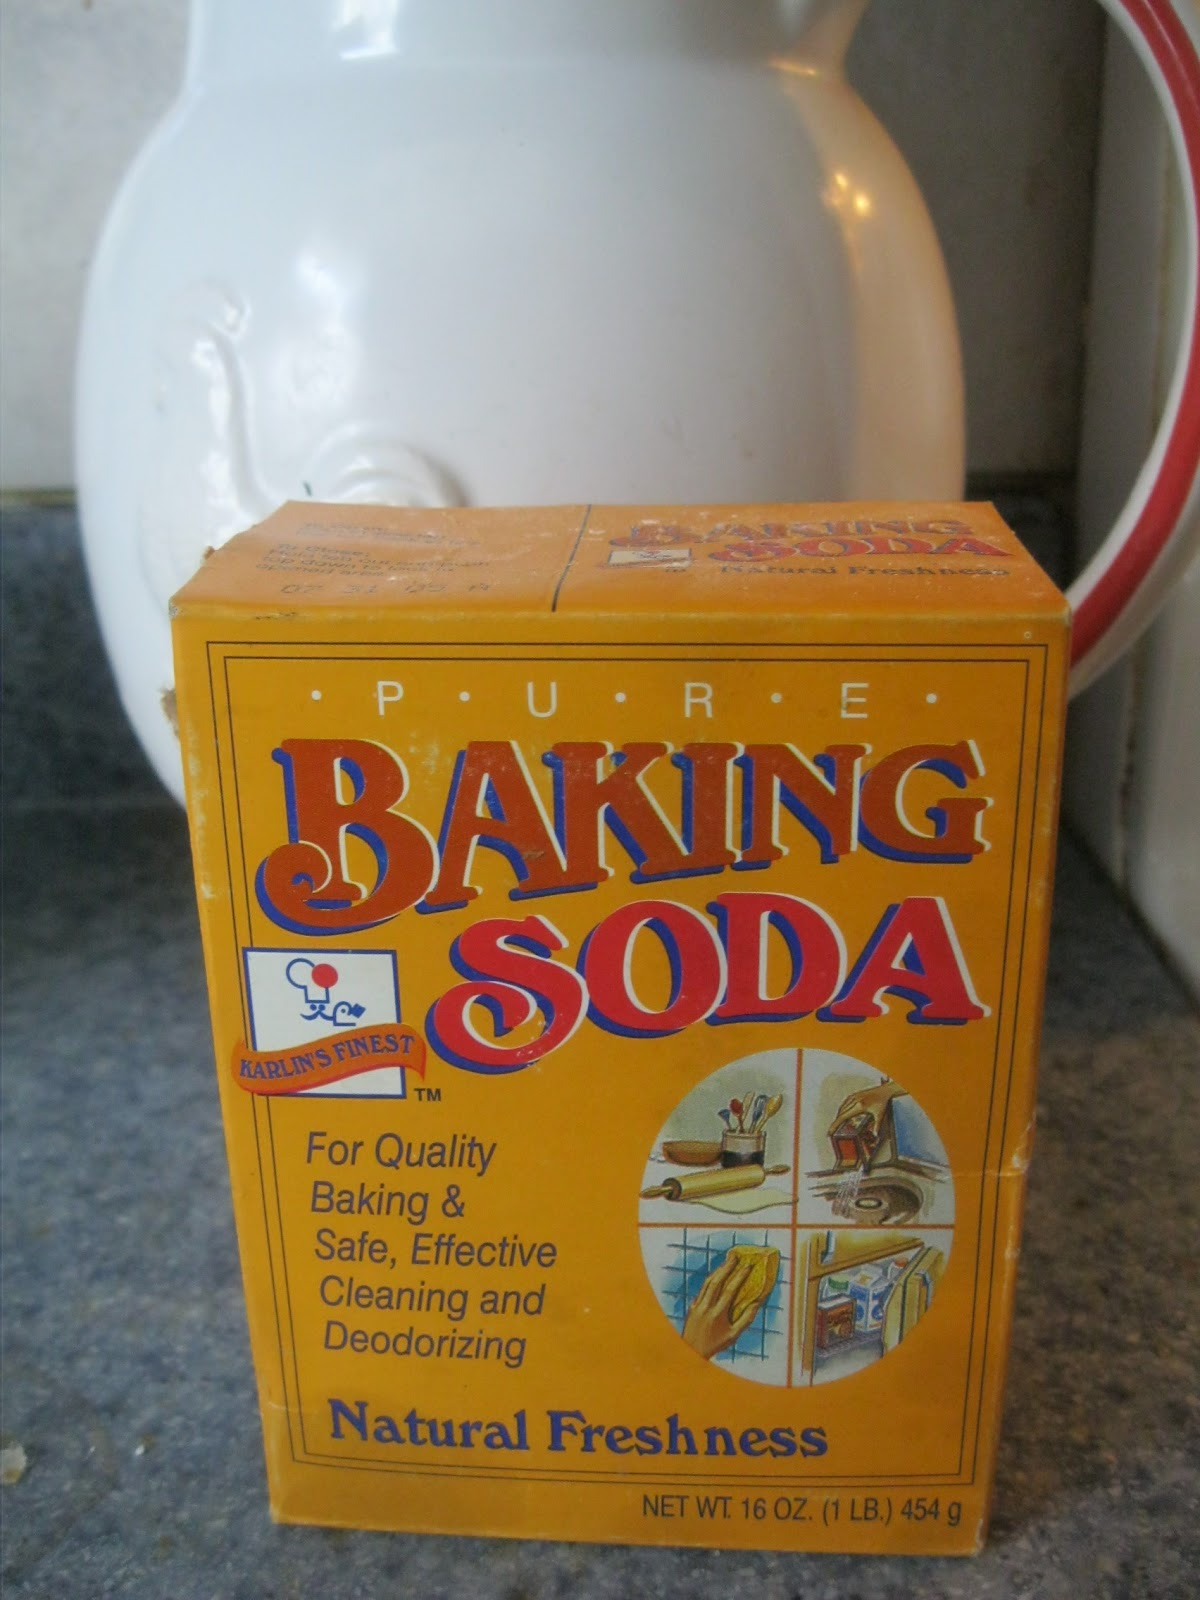 TIP GARDEN: Spring Cleaning With Baking Soda